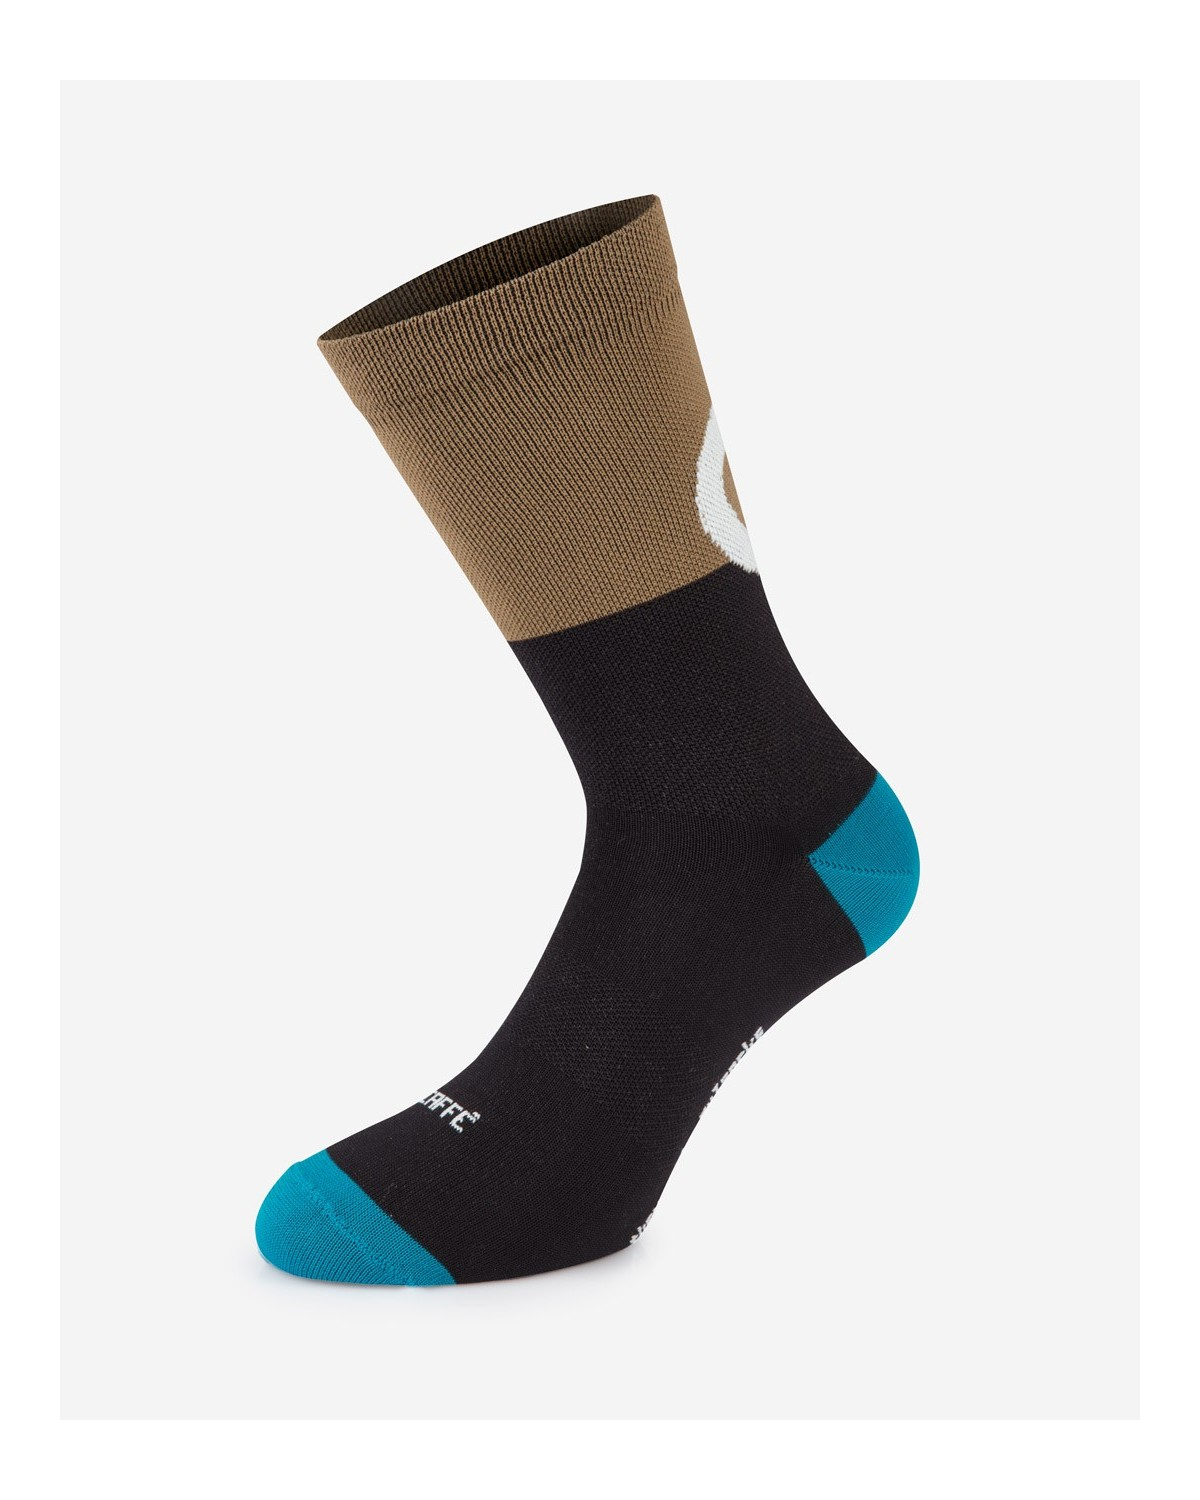 The Wonderful Socks Caffe Radsocken